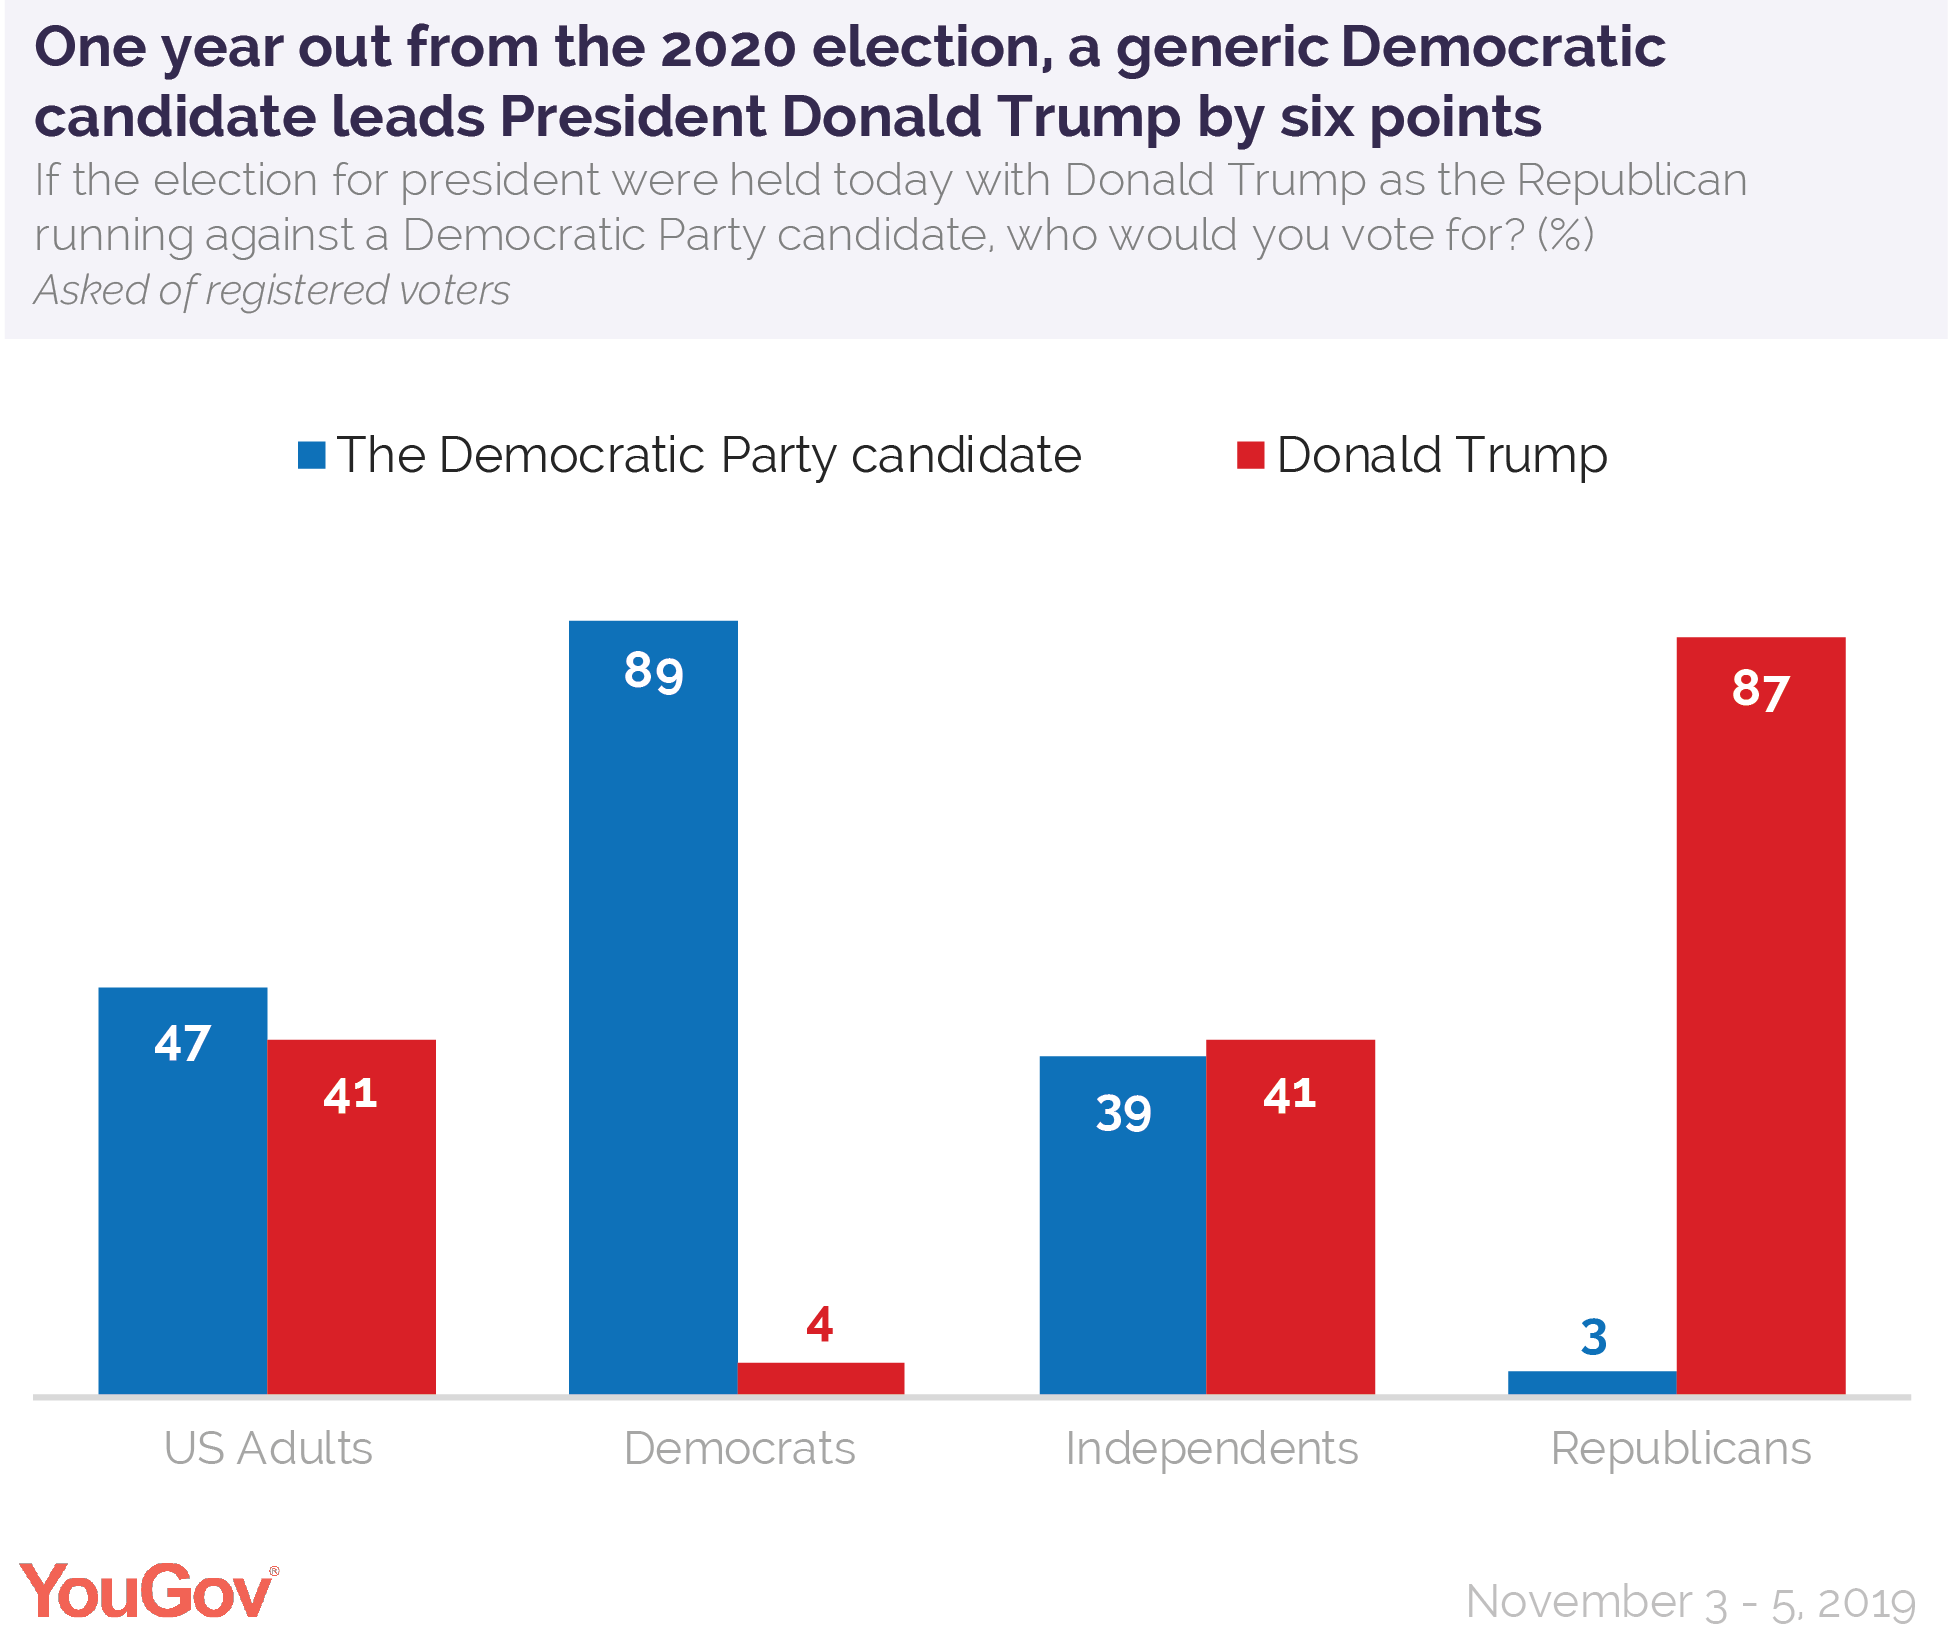 One year out from the 2020 election, a generic Democratic candidate leads President Donald Trump by six points